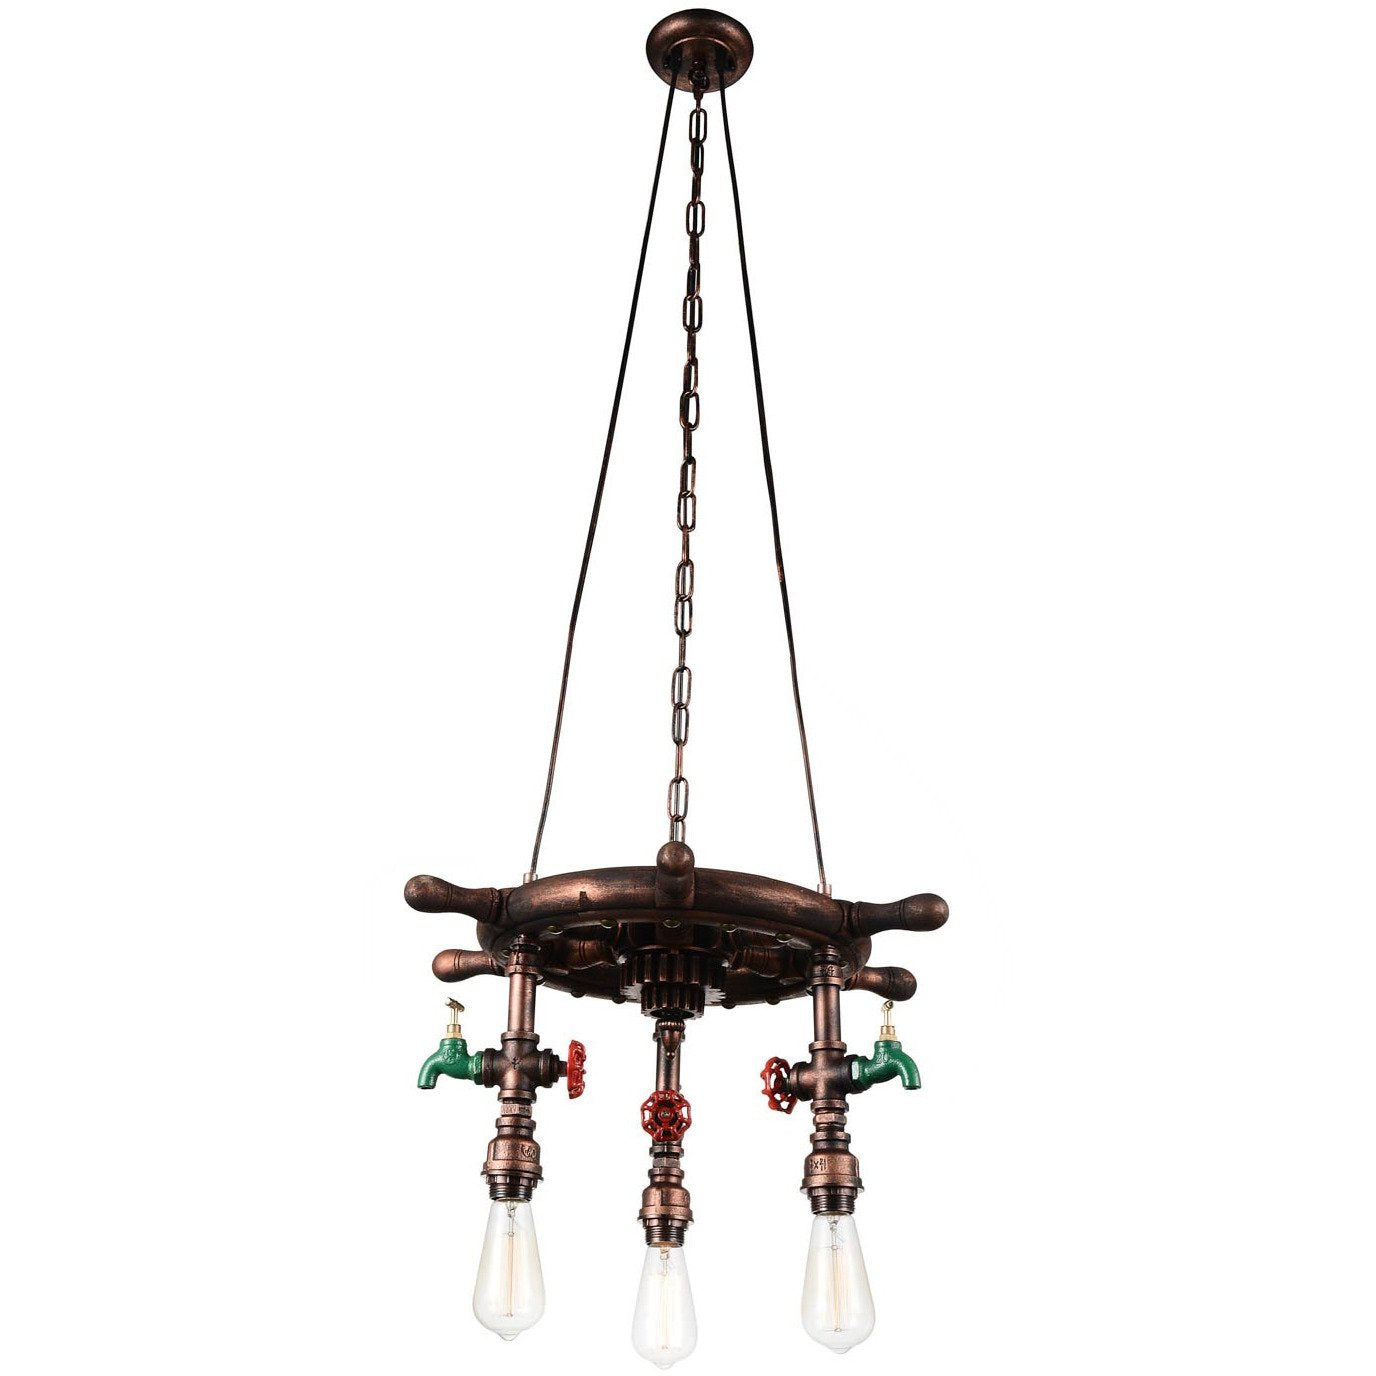 CWI Lighting Chandeliers Speckled copper Manor 3 Light Down Chandelier with Speckled copper finish by CWI Lighting 9718P22-3-210-A